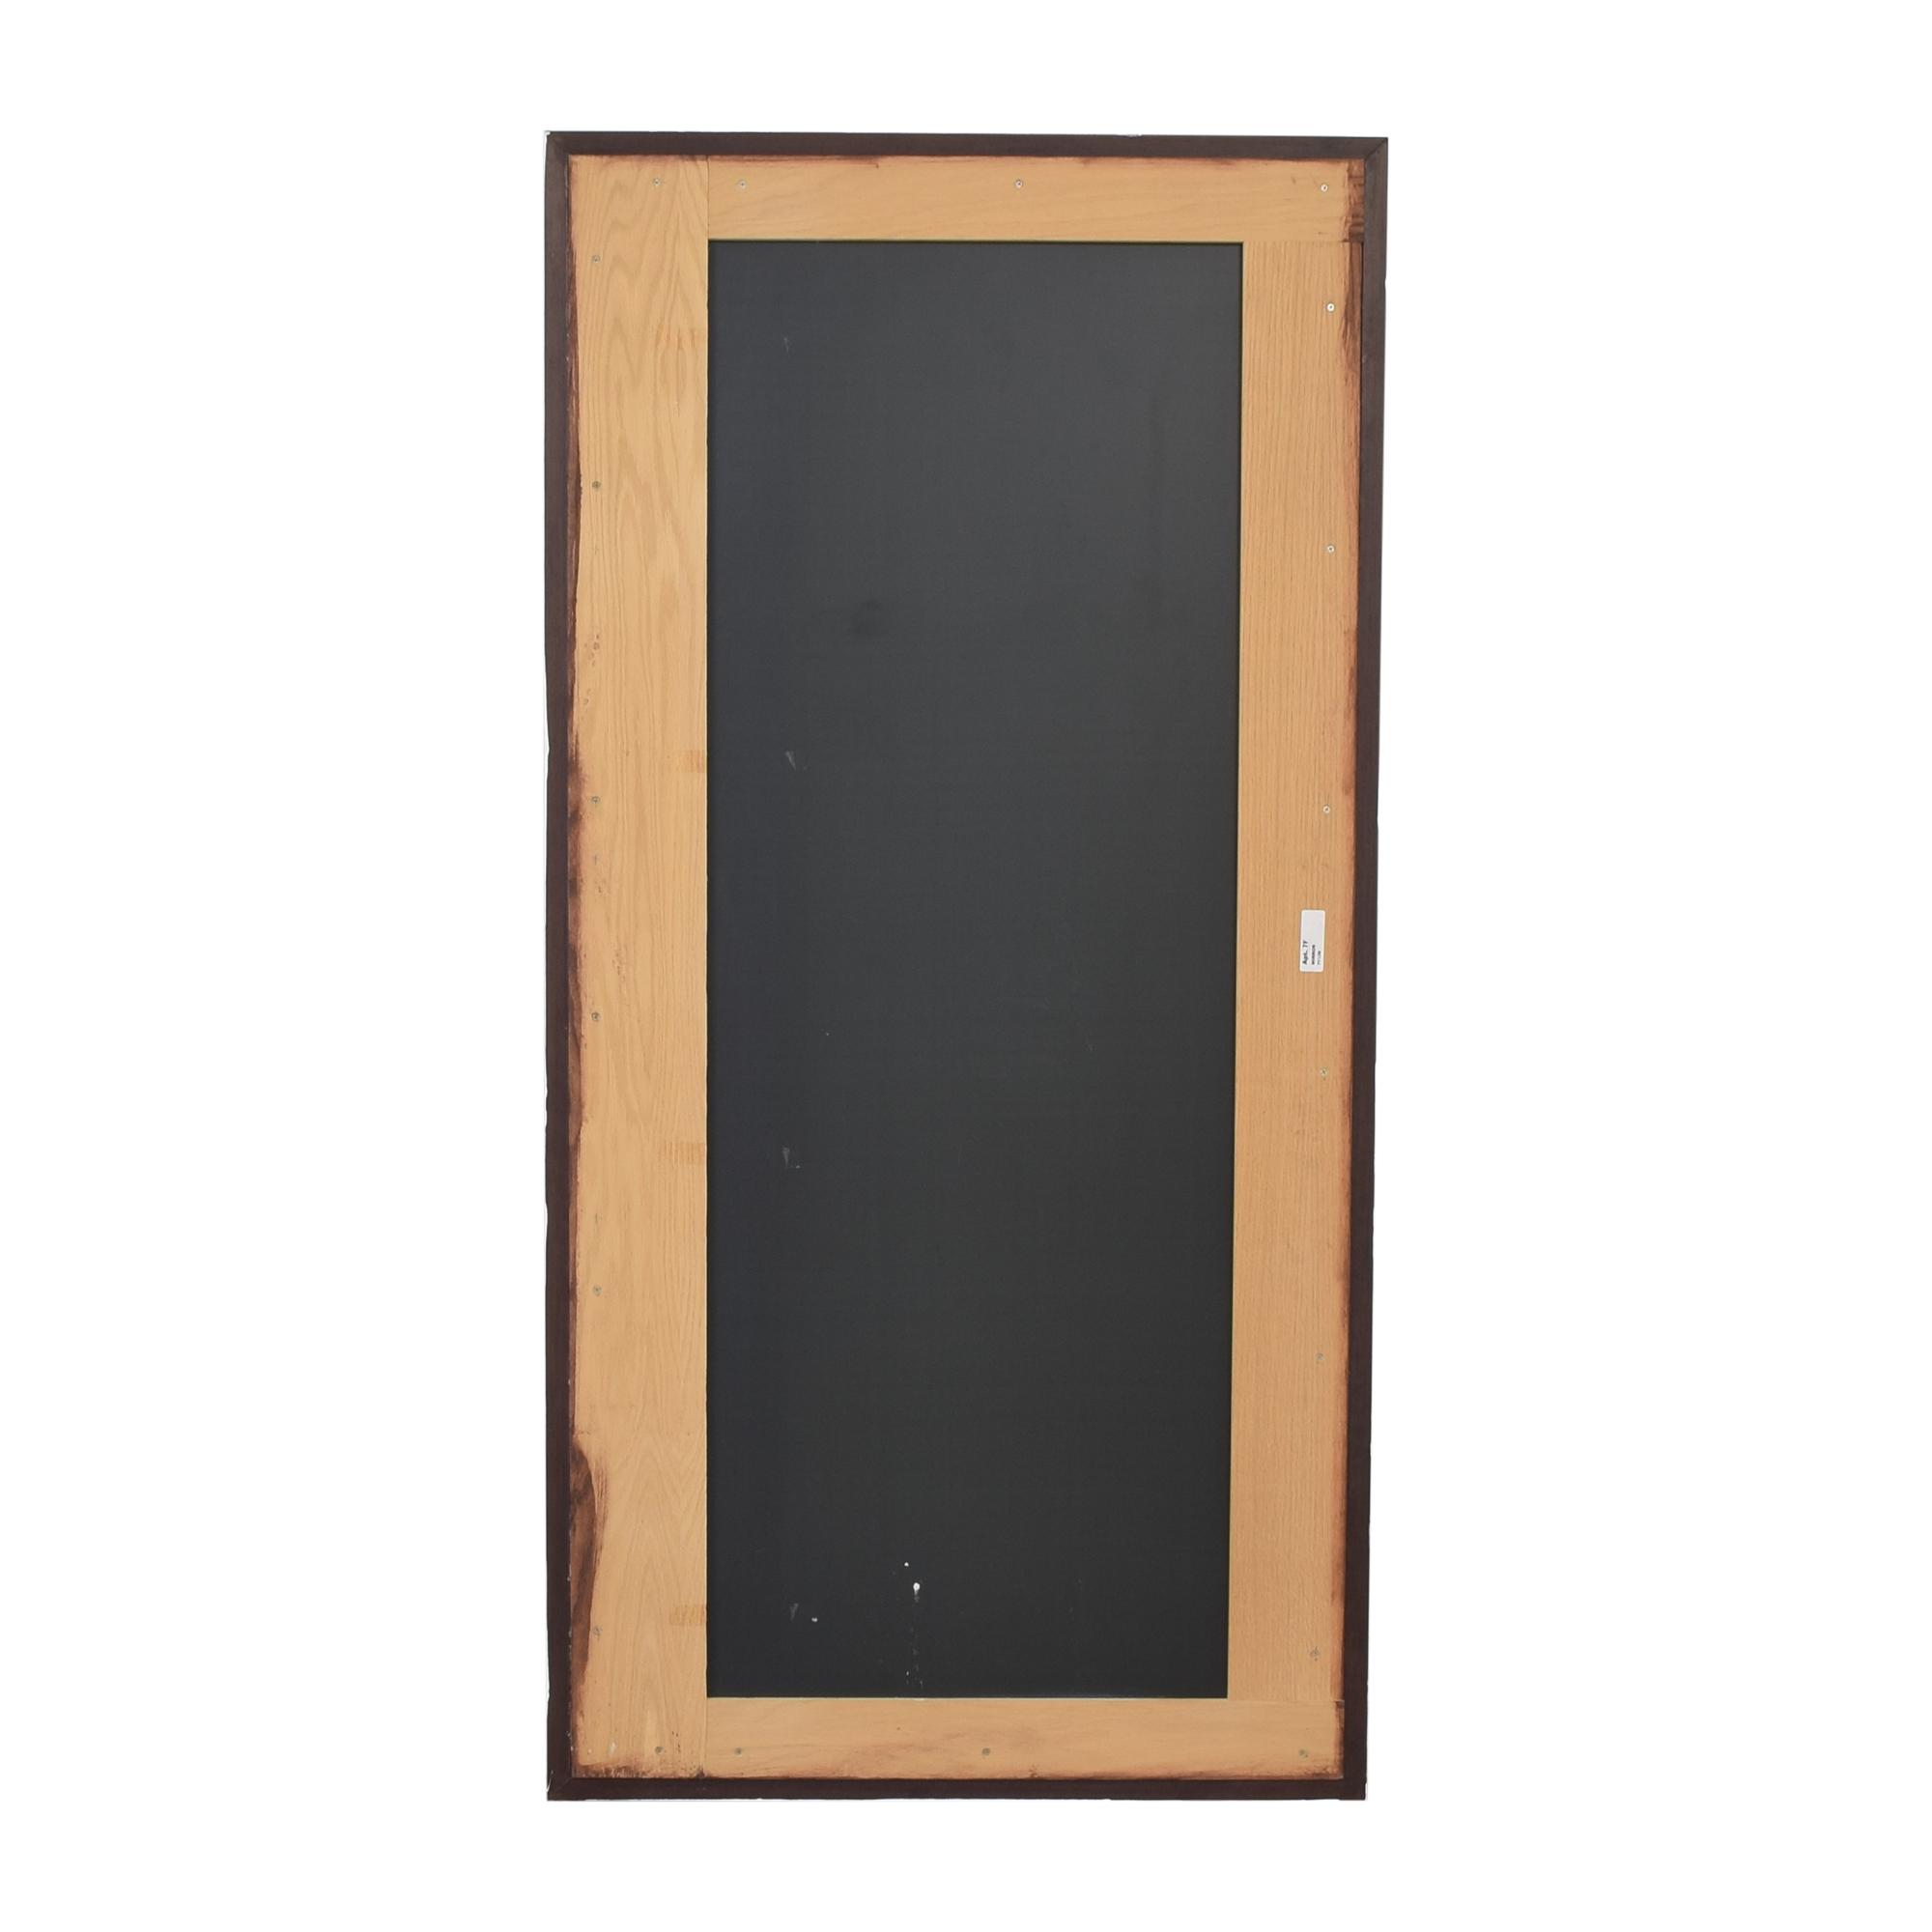 Tall Framed Mirror for sale